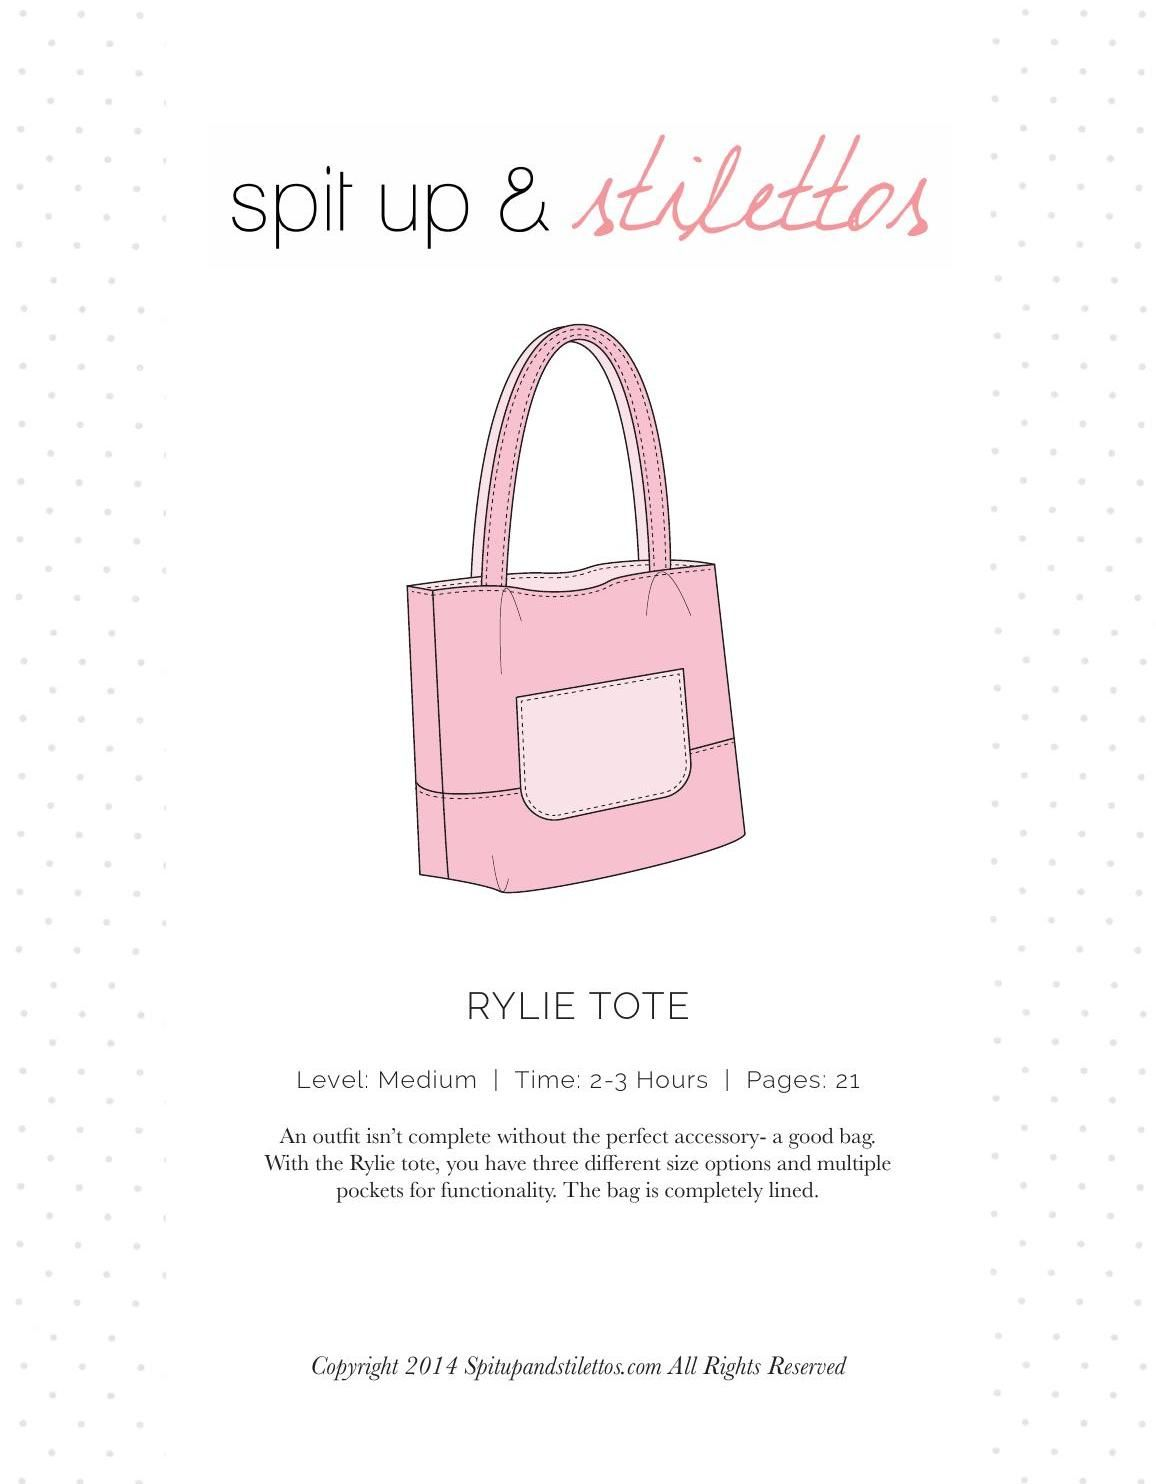 Rylie Tote Bag Sewing Pattern Spit Up & Stilettos #ClippedOnIssuu ...